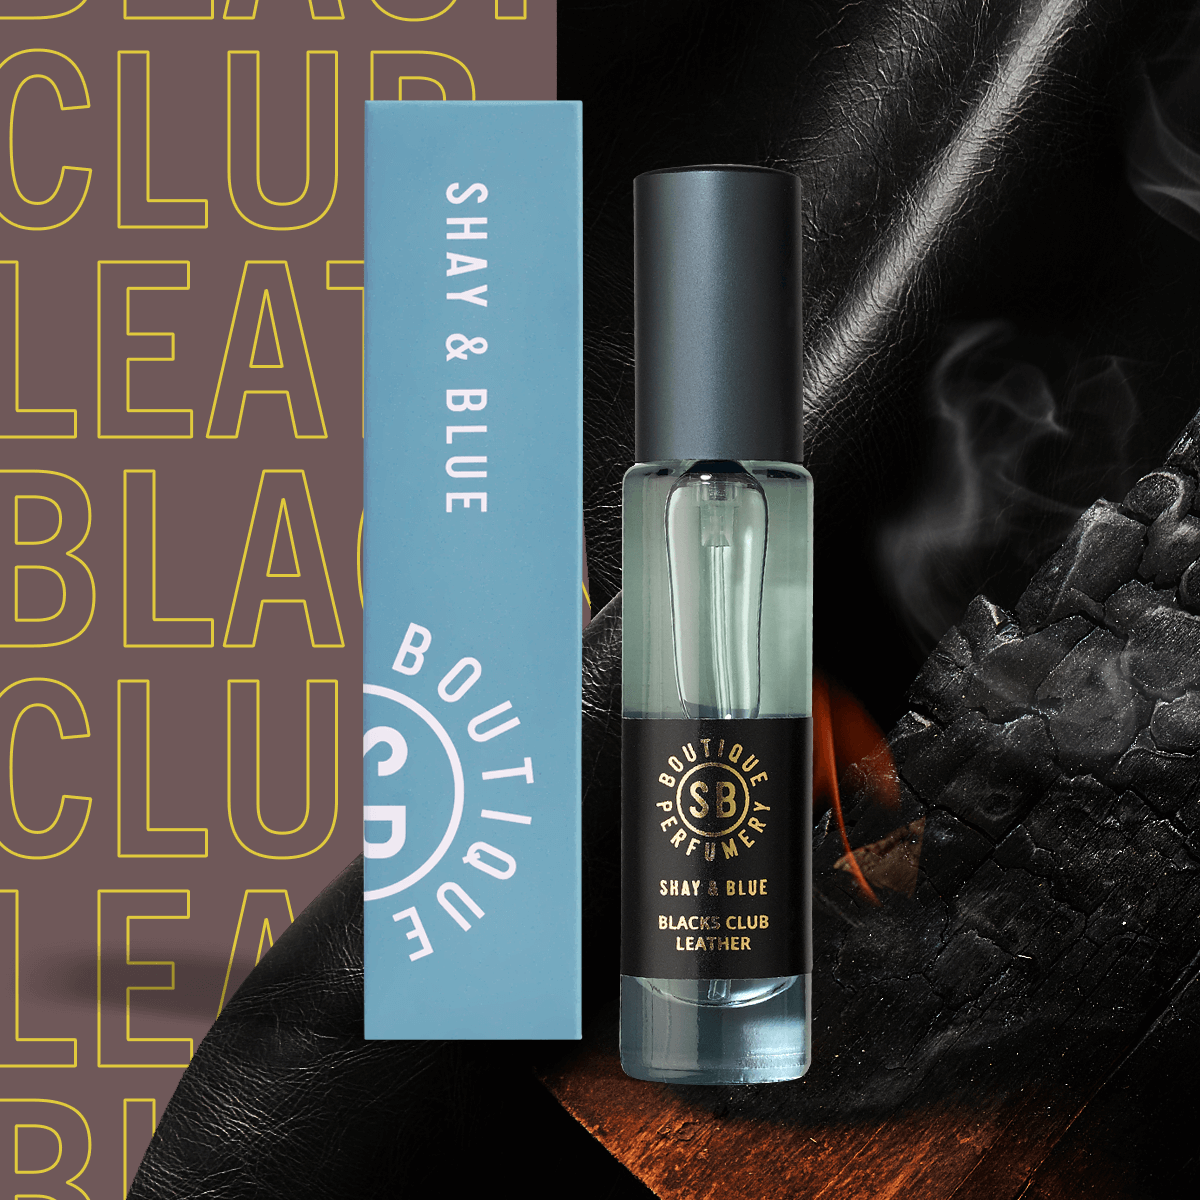 Blacks Club Leather Fragrance Concentrate 10ml | Rich with the scent of English leather, fire wood and a smooth brandy. | Clean All Gender Fragrance | Shay & Blue